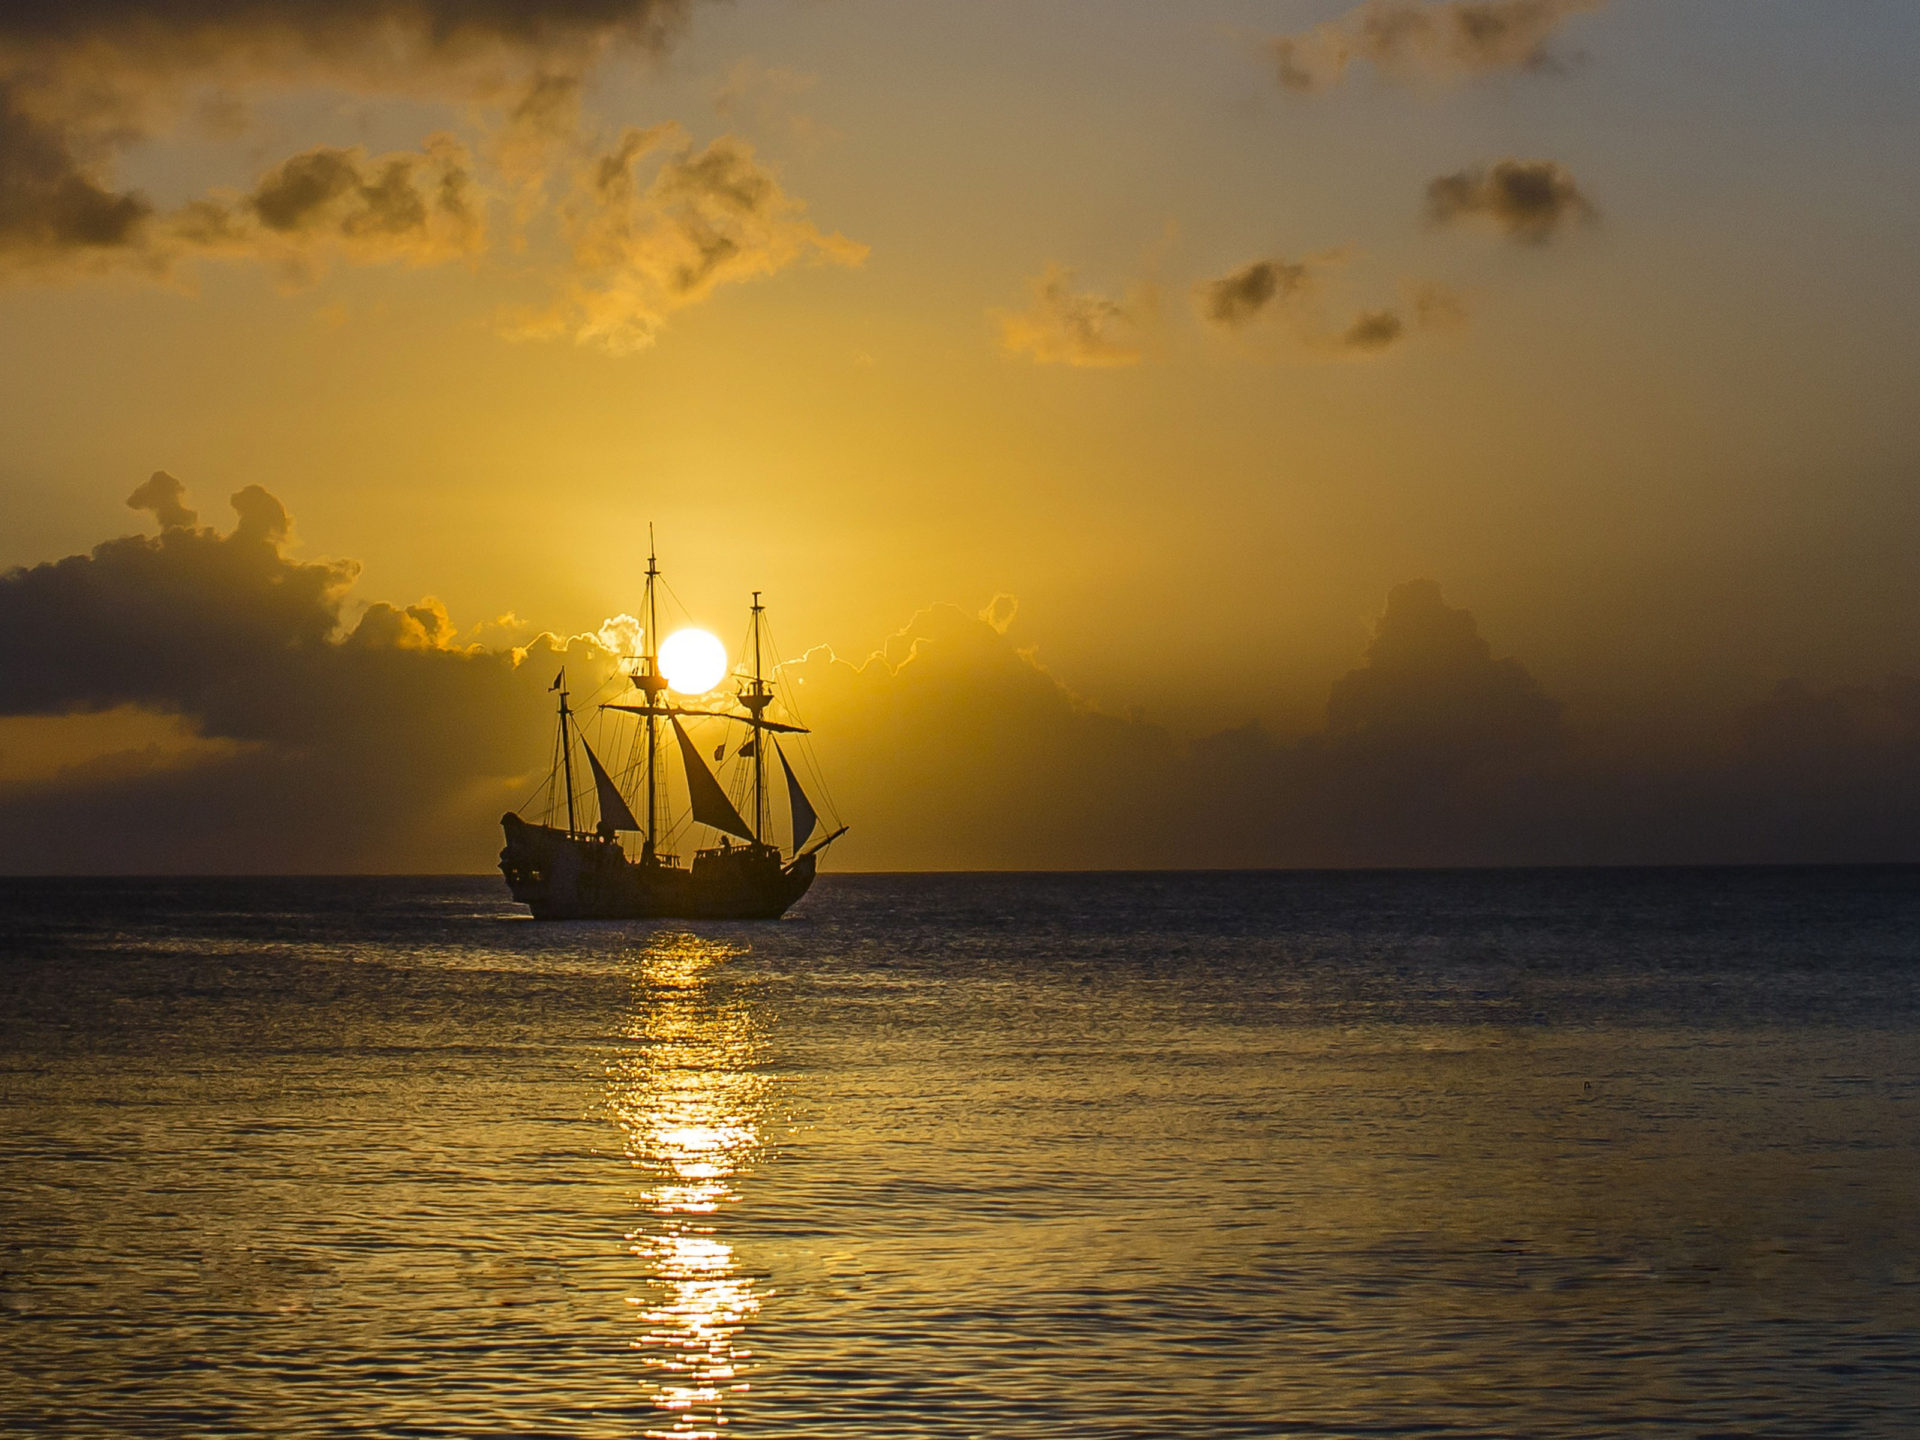 gold sunset ocean old pirate ship with sail sky 4k ultra hd wallpaper for desktop mobile and puter 3840x2400